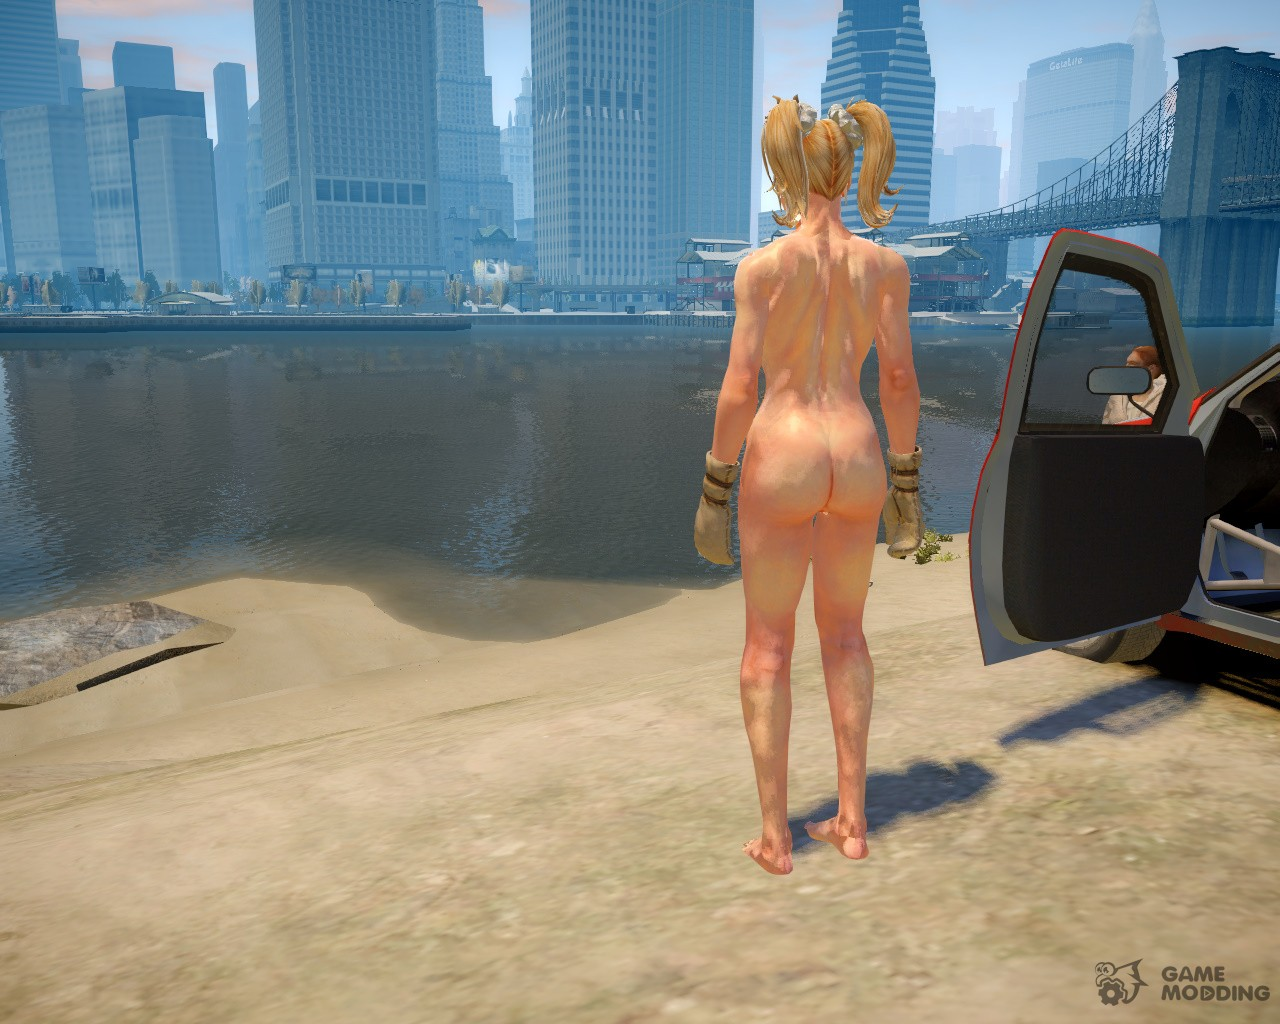 Gta 5 sexy nude wallpaper hentia galleries